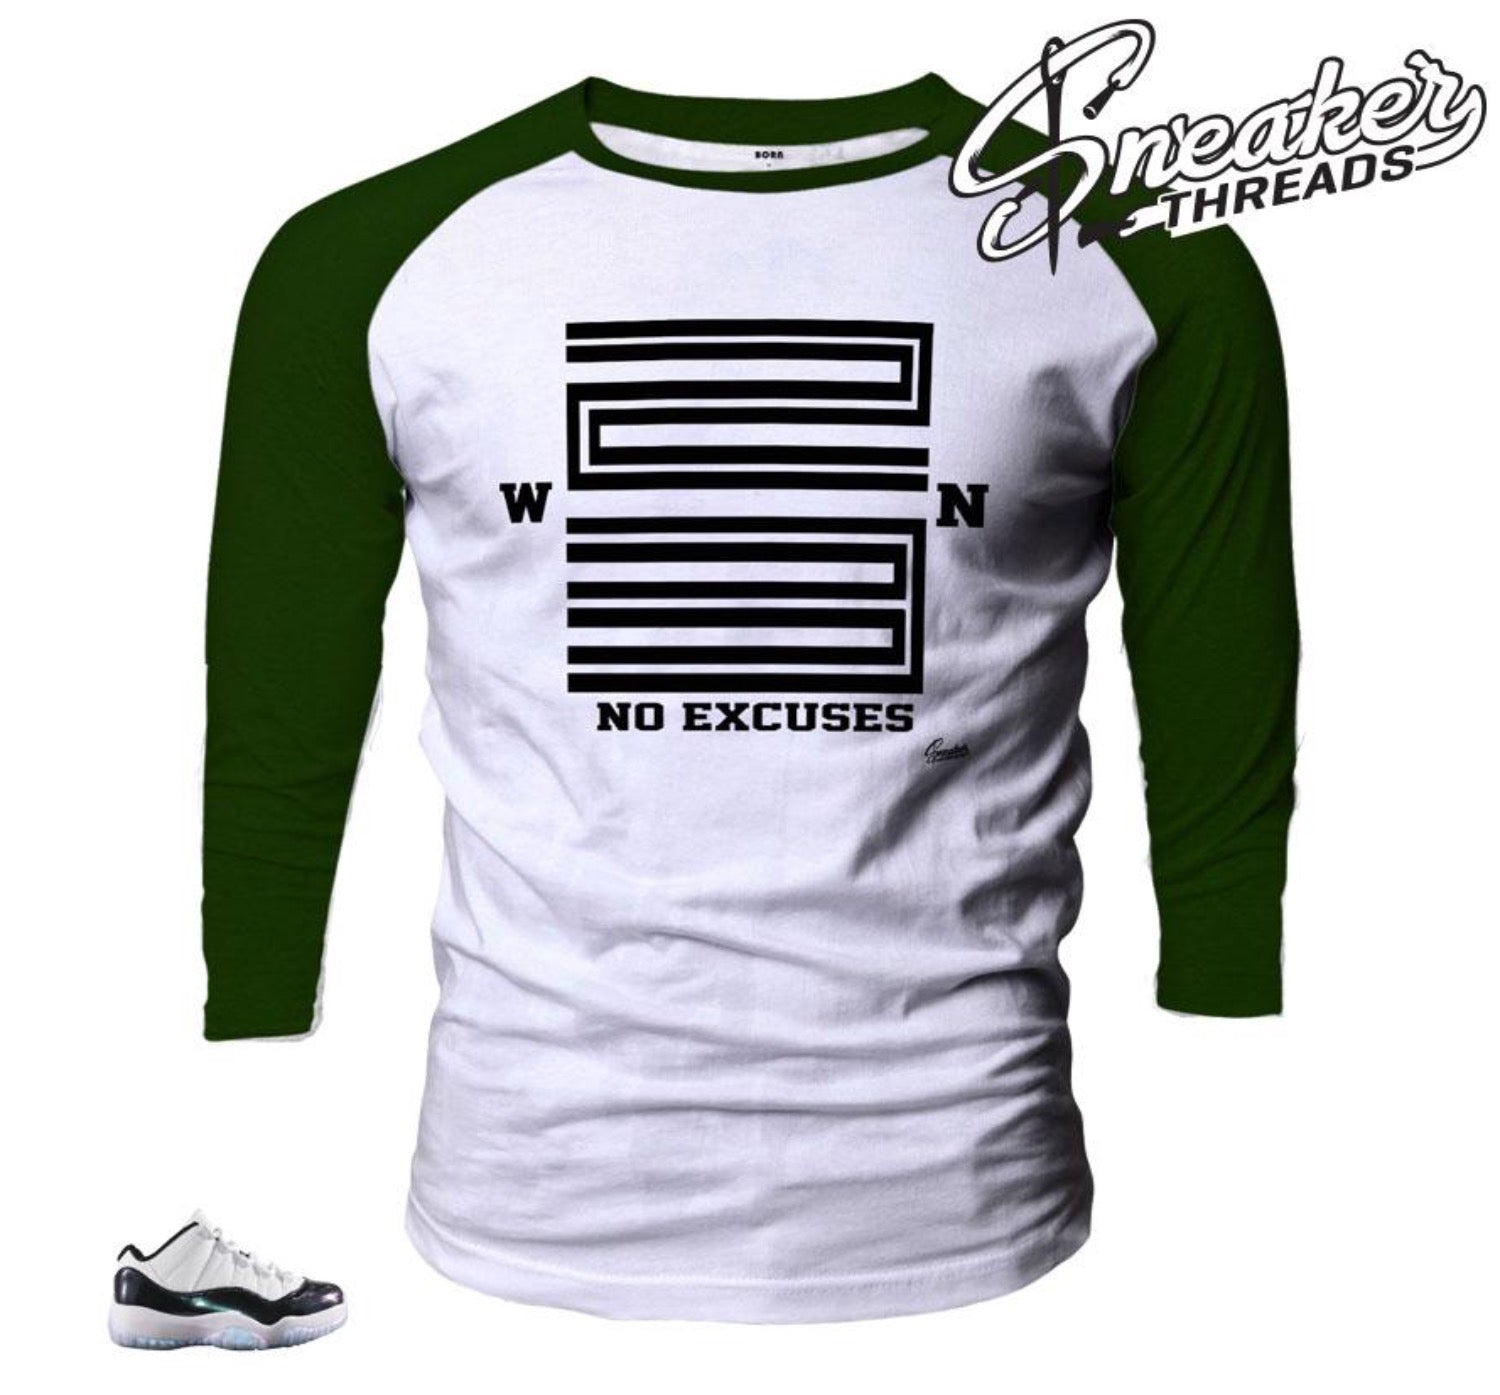 8abab51e4d51 Jordan 11 Easter Shirts match retro 11 emerald green sneaker tees.